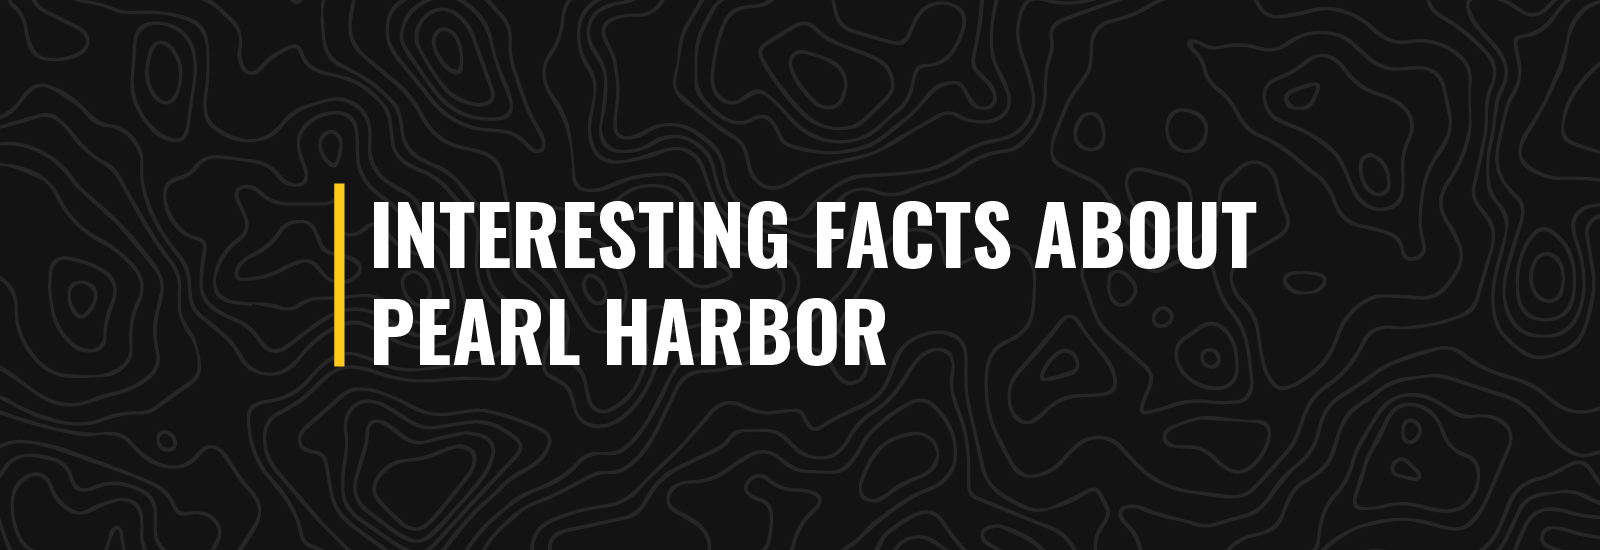 Interesting Facts About Pearl Harbor